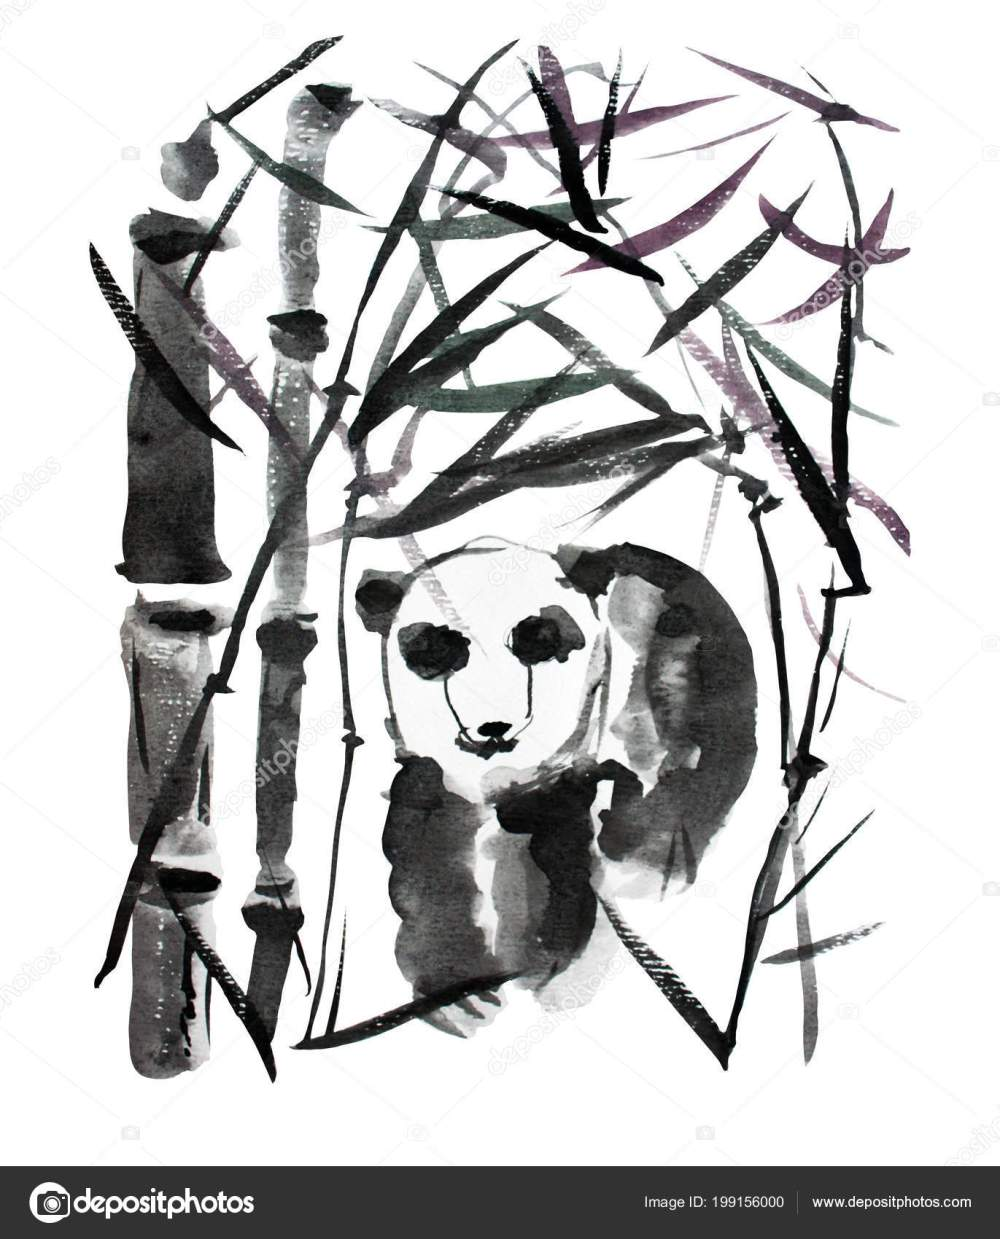 medium resolution of decorative watercolor panda bear and bamboo plants clipart design elements can be used for cards invitations banners posters print design